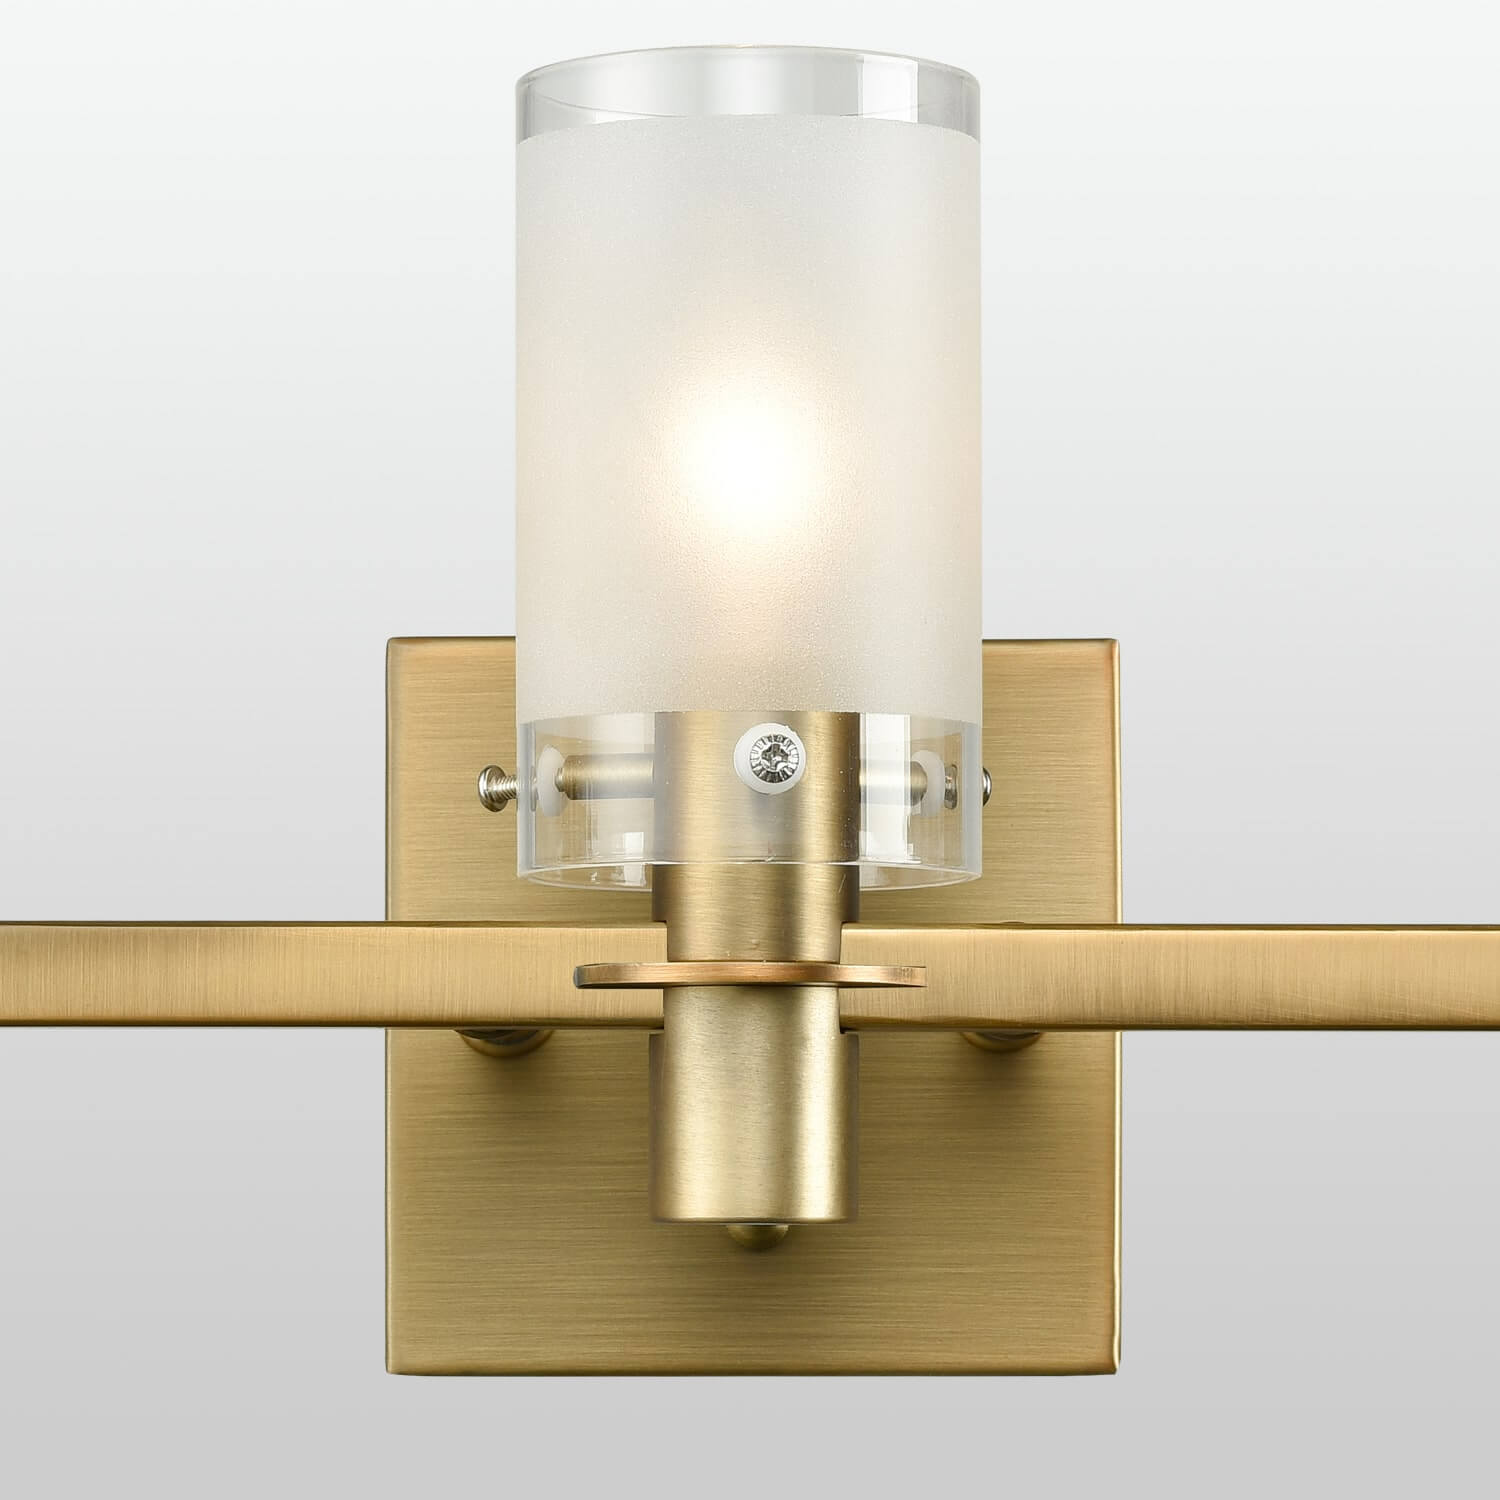 Modern Brass Bathroom Vanity Lighting with Frosted Glass - 3 Light